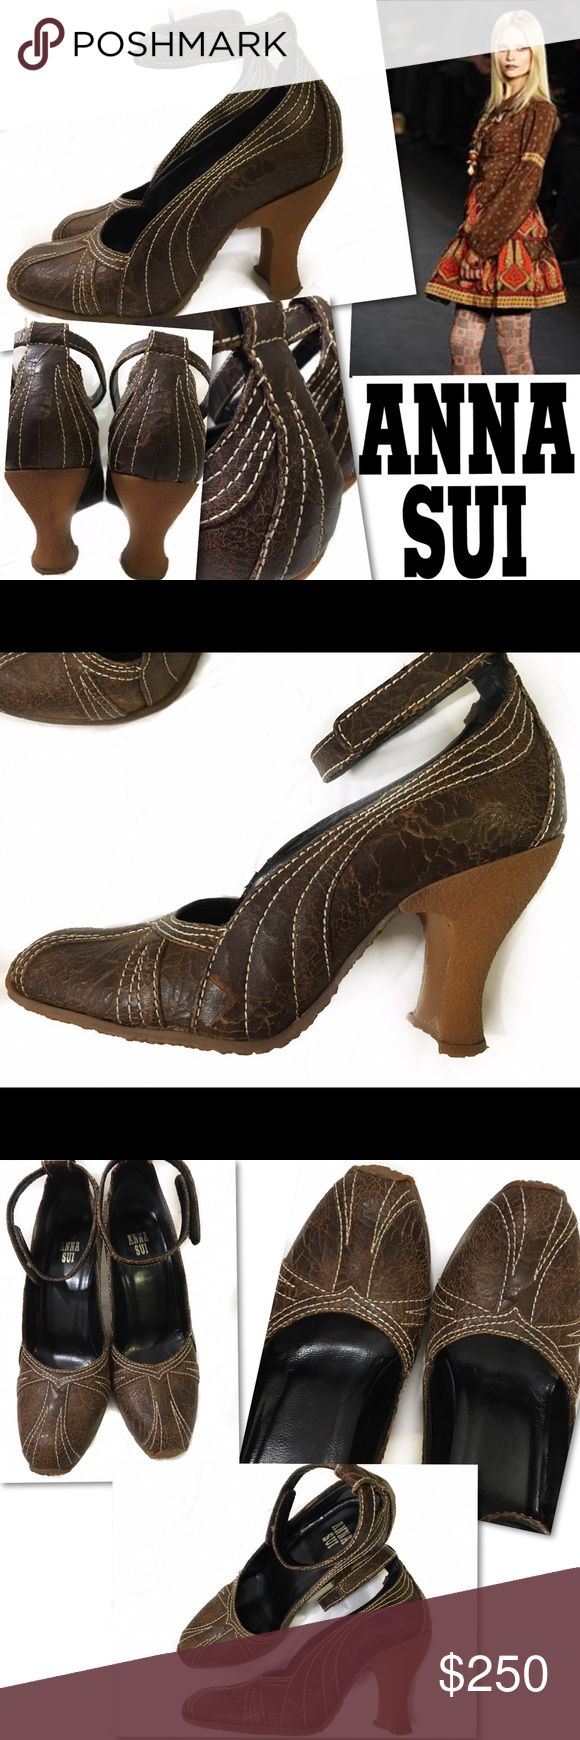 ANNA SUI BROWN DISTRESSED LEATHER HEELS SHOES SZ 6 ANNA SUI  ITALY BROWN DISTRESSED LEATHER ANKLE STRAP HEELS ITALY SZ 36 US SZ 6 Anthropologie Shoes Heels